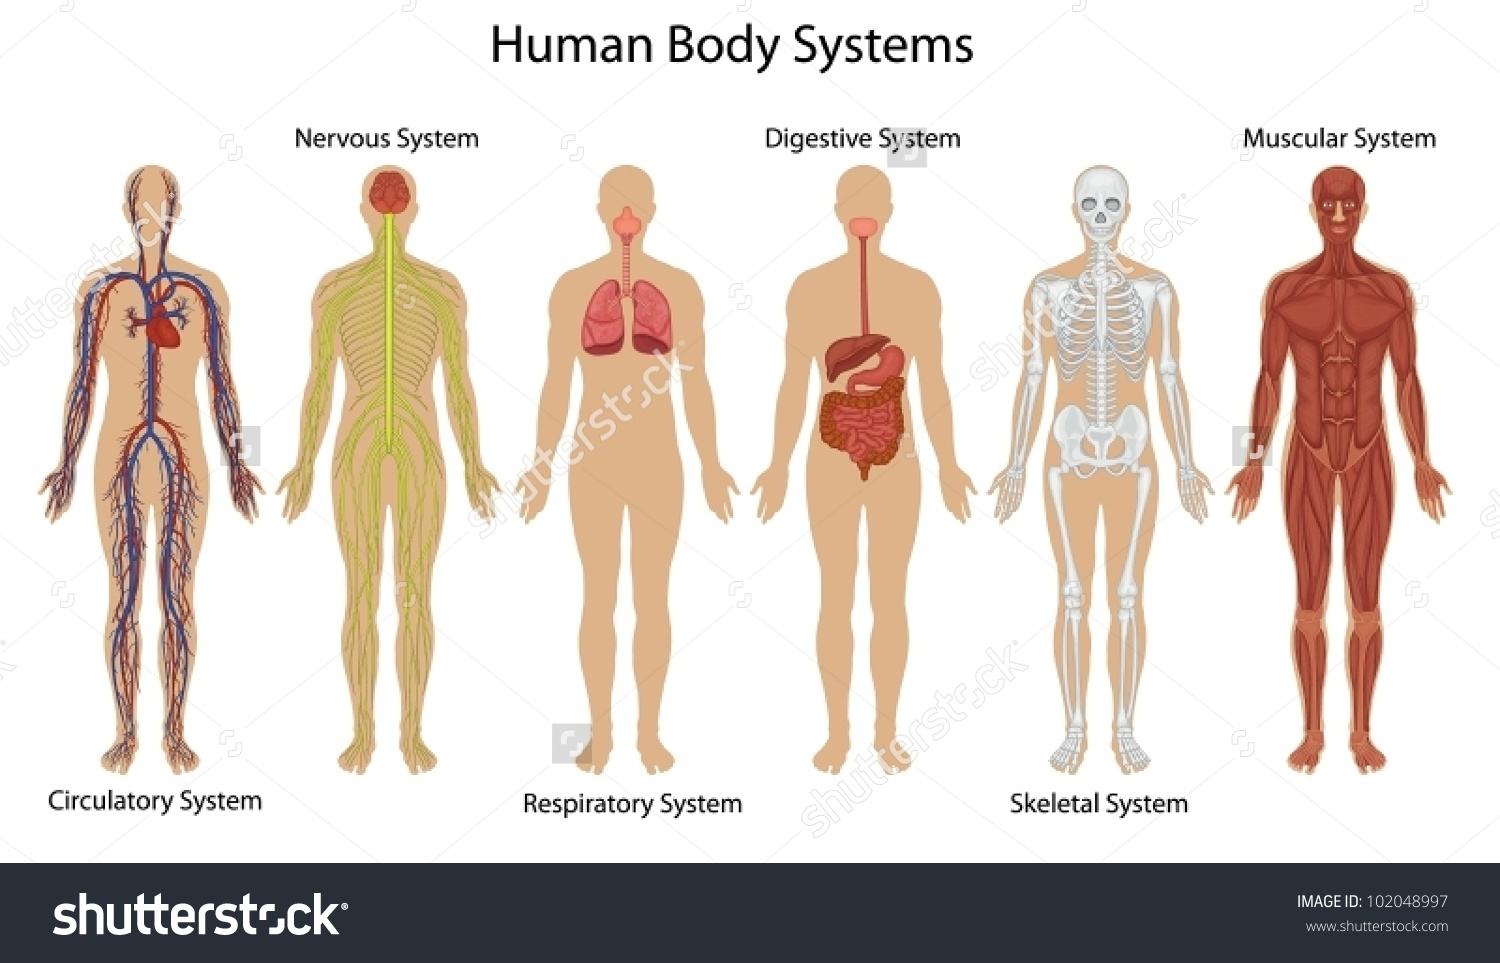 Nervous System In The Body Clipart 20 Free Cliparts